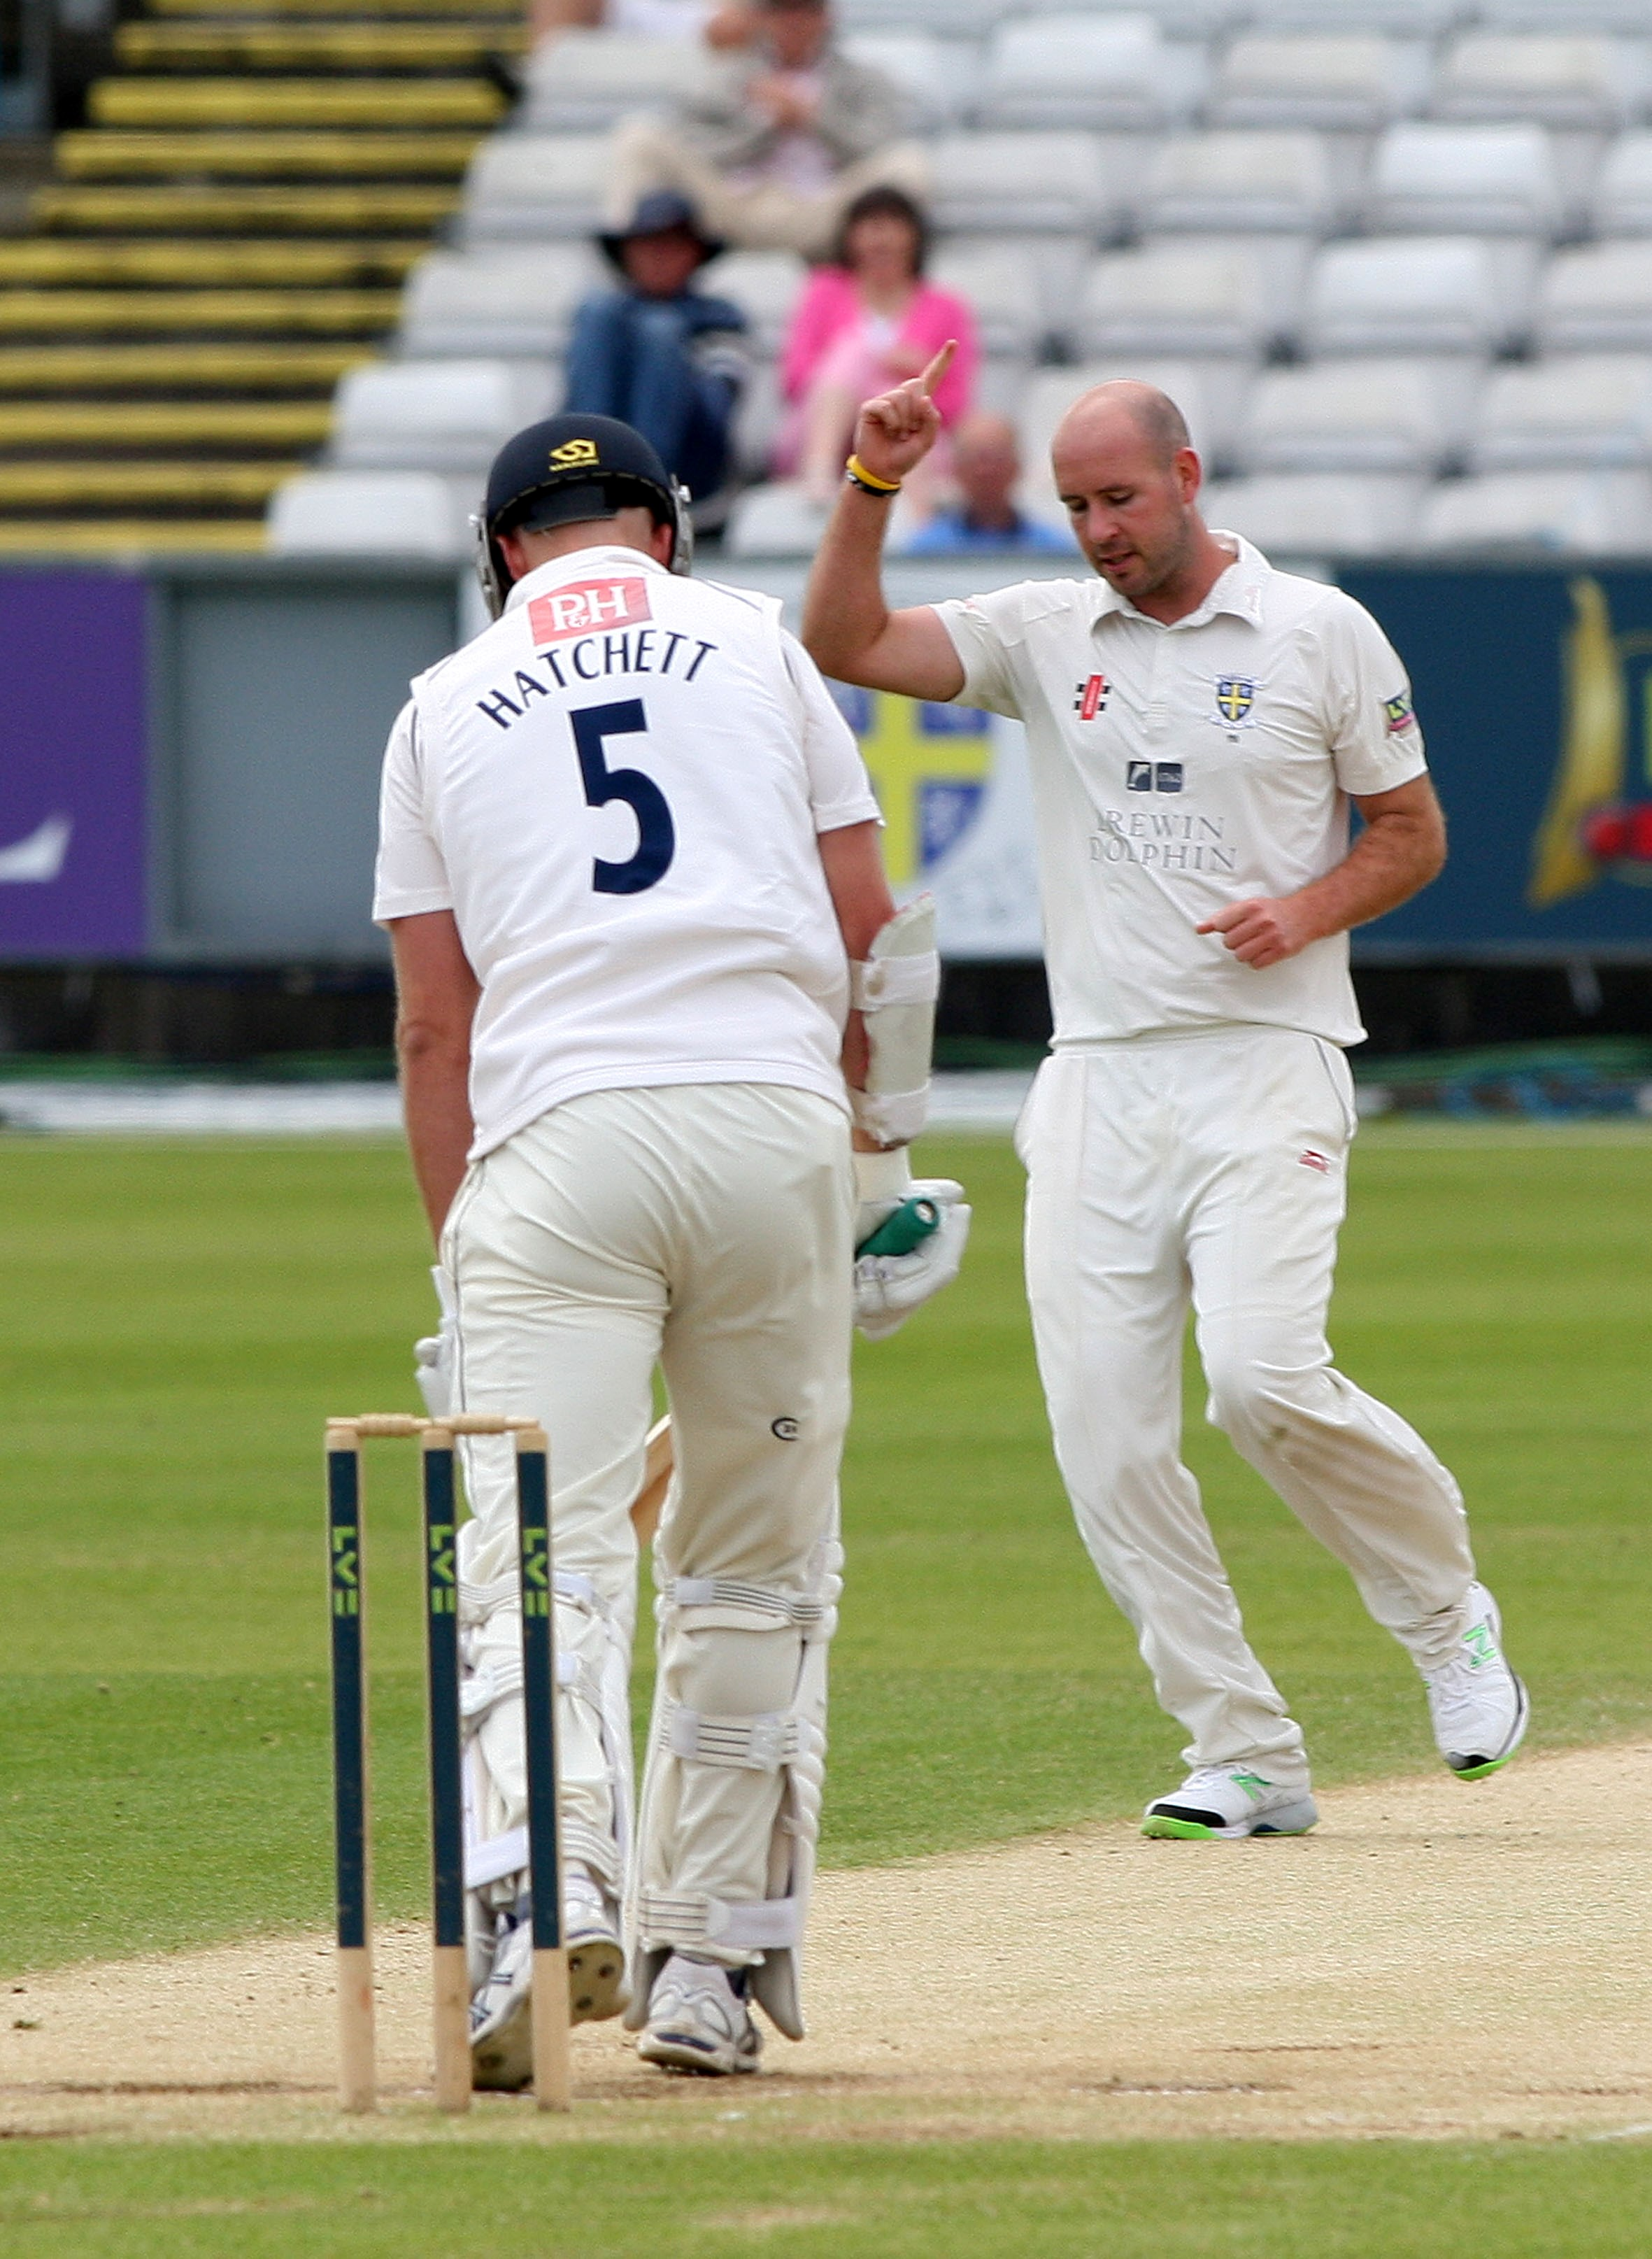 CLINCHER: Chris Rushworth after bowling the winning ball against Sussex yesterday. Picture: TOM BANKS